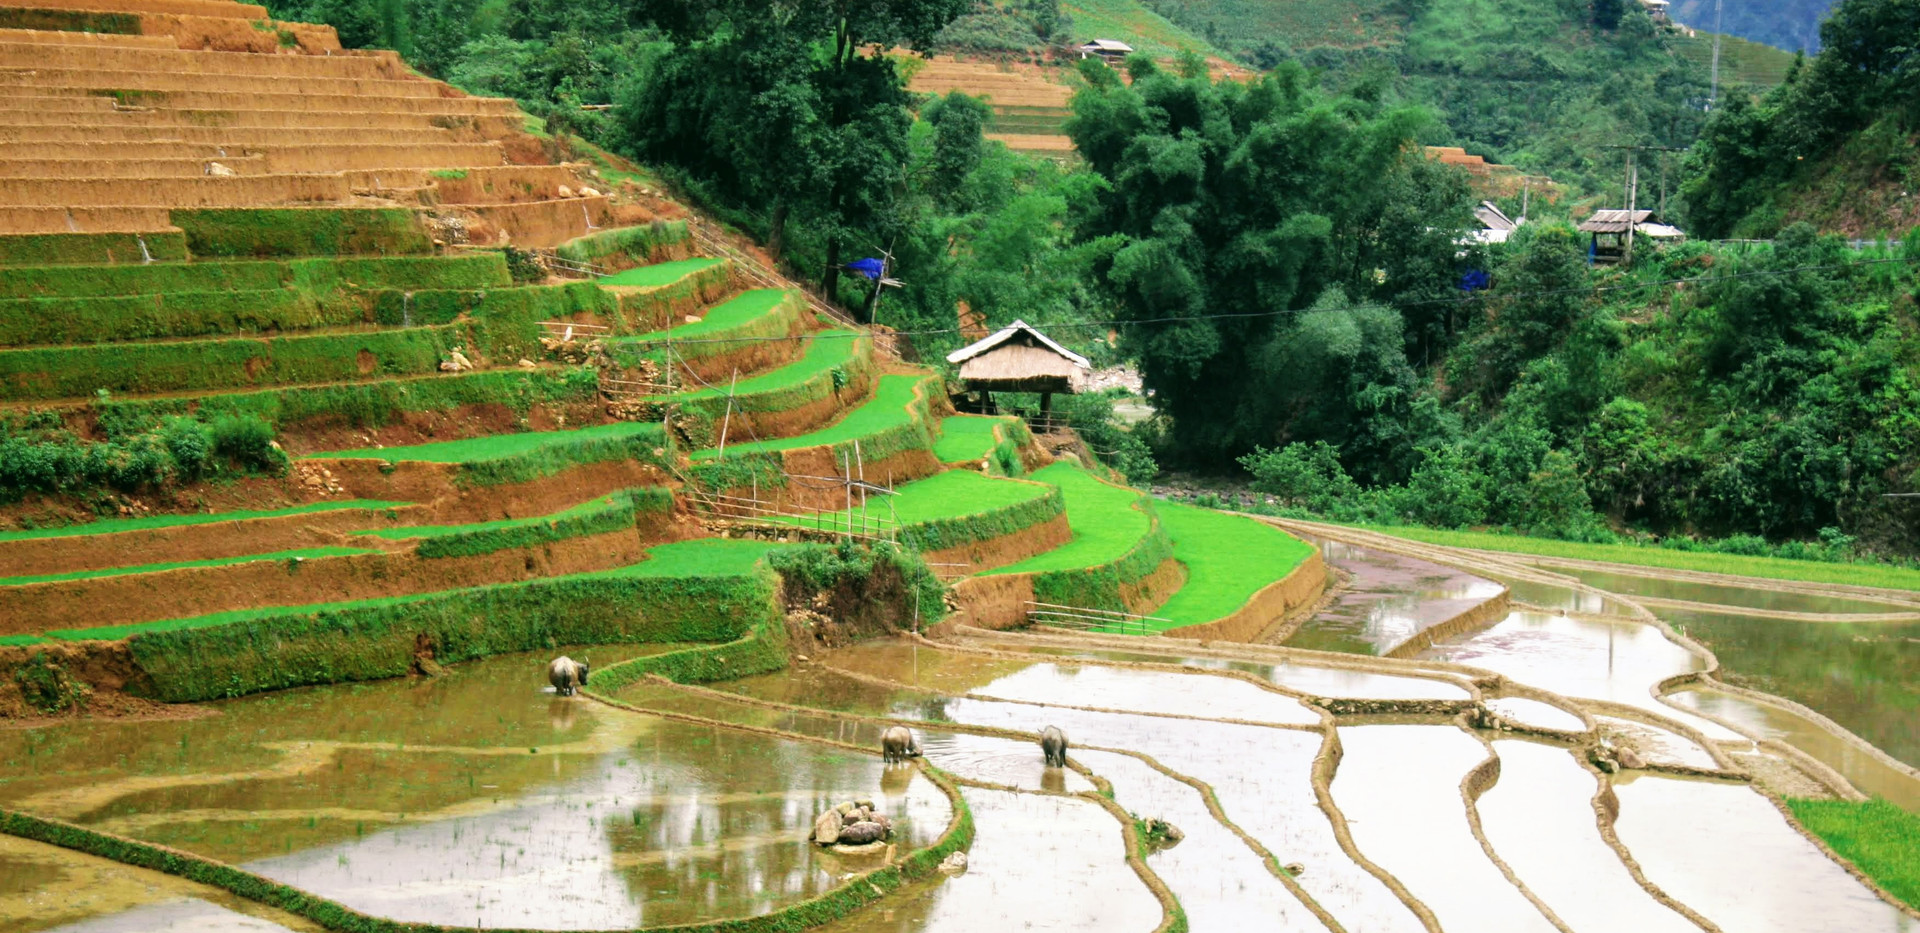 Local people is planting rice fields